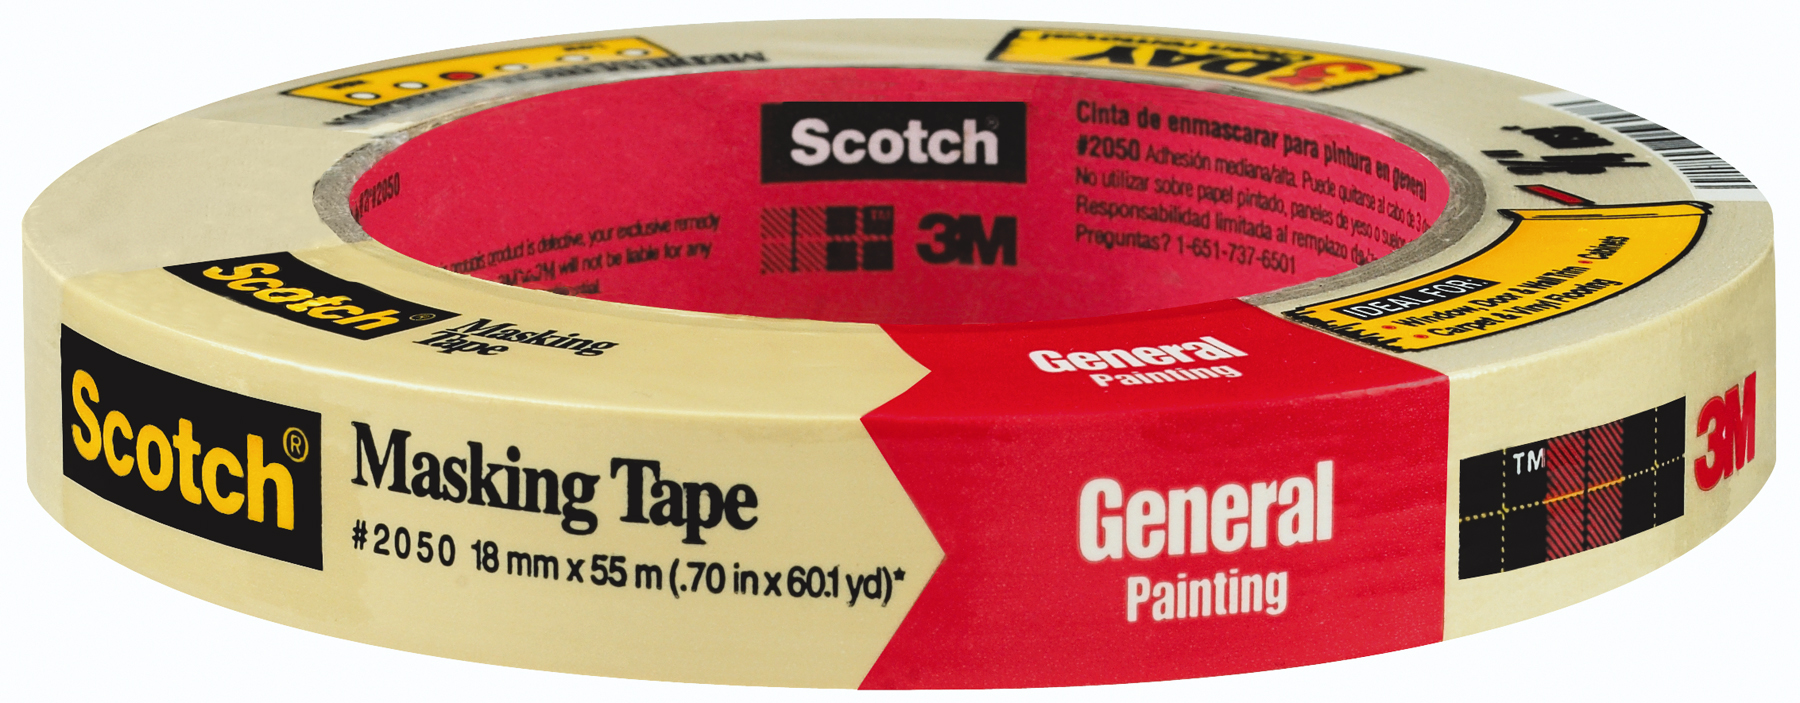 3M Scotch Masking Tape for General Painting .70 in x 60 yd (18mm x 55m) Shrinkwrapped